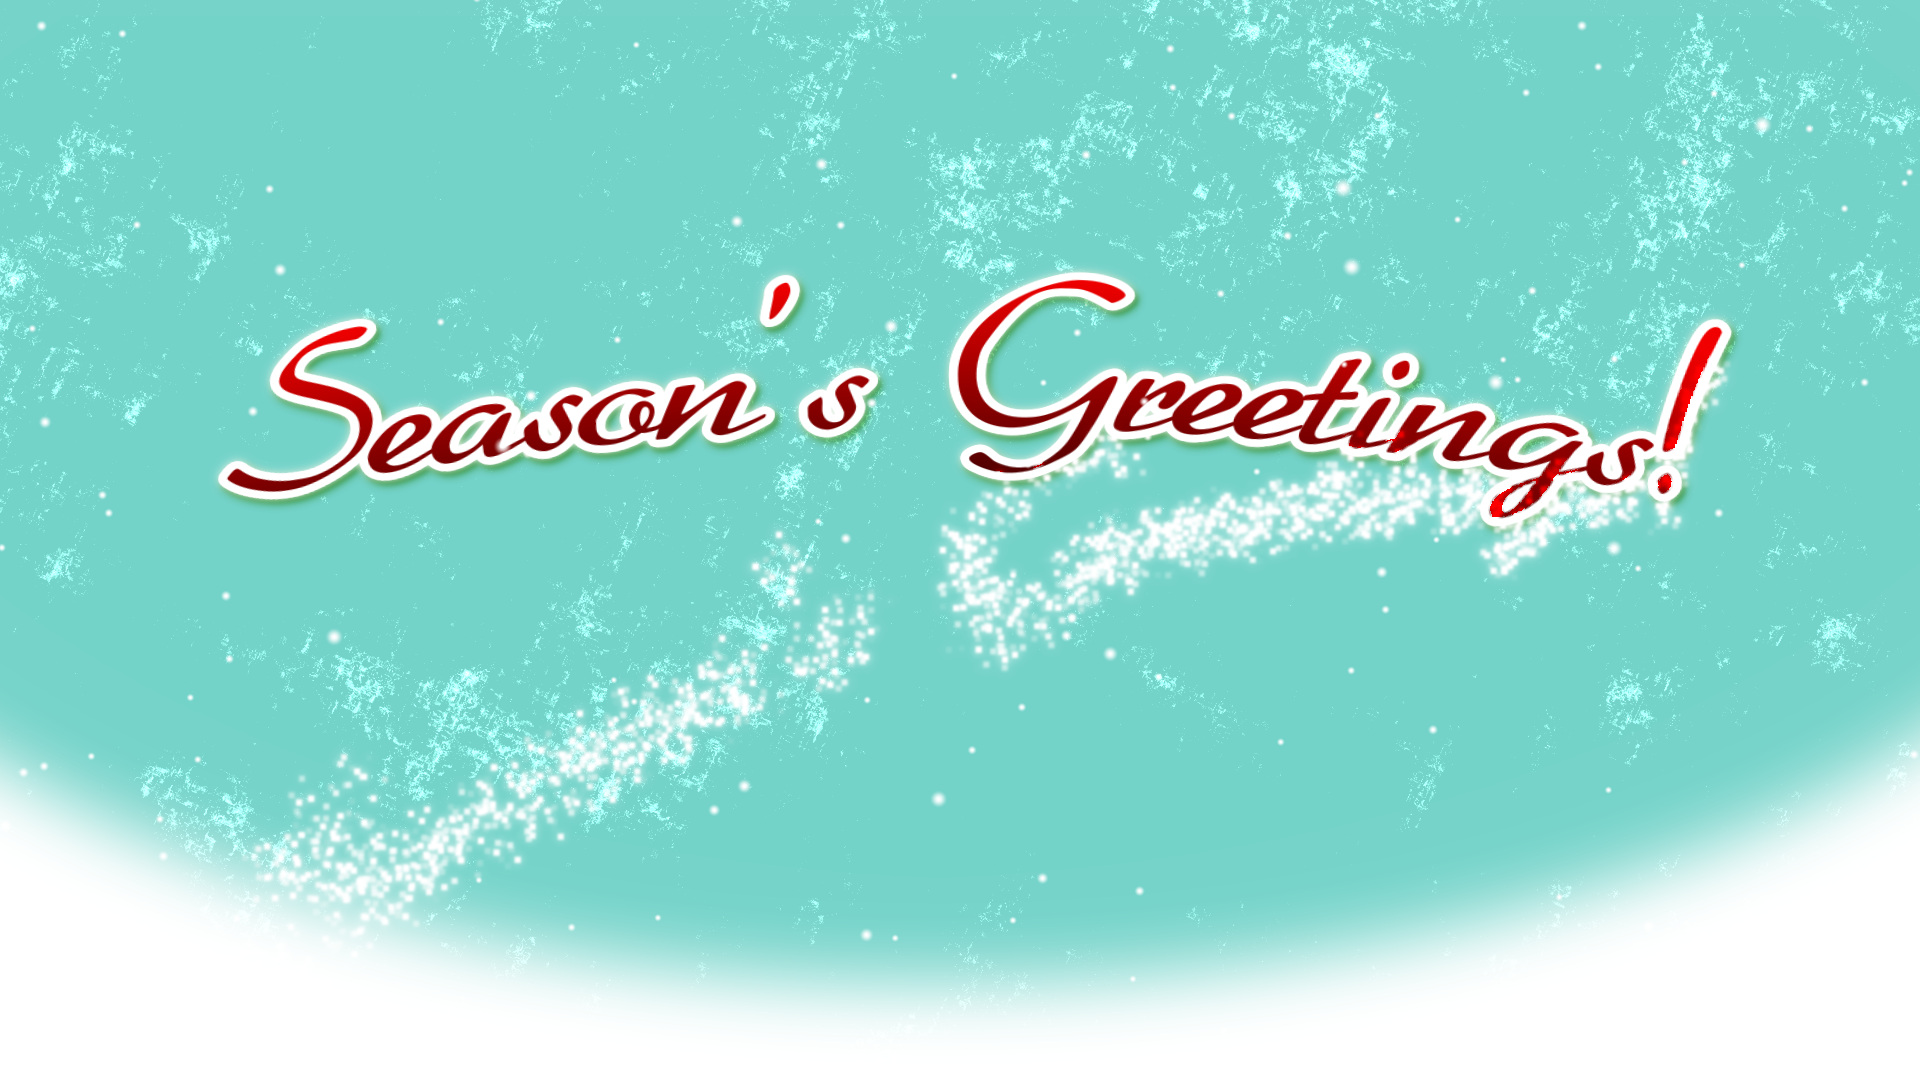 After Effects Tutorial Christmas Greetings 2010 Short Form Video